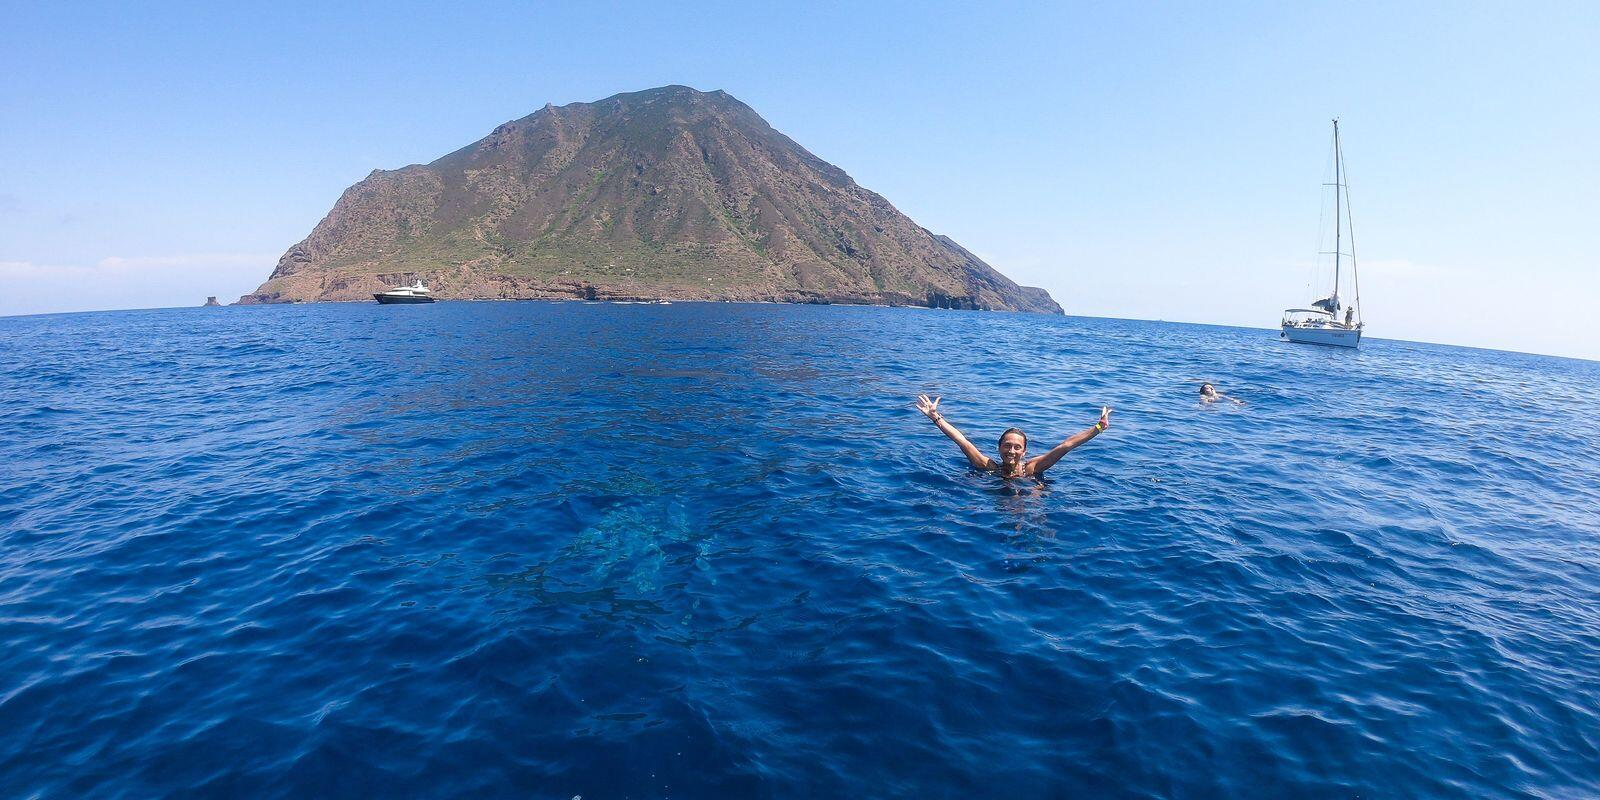 Sun, salt, relaxation and fun. This is the best time to experience the Aeolian Islands